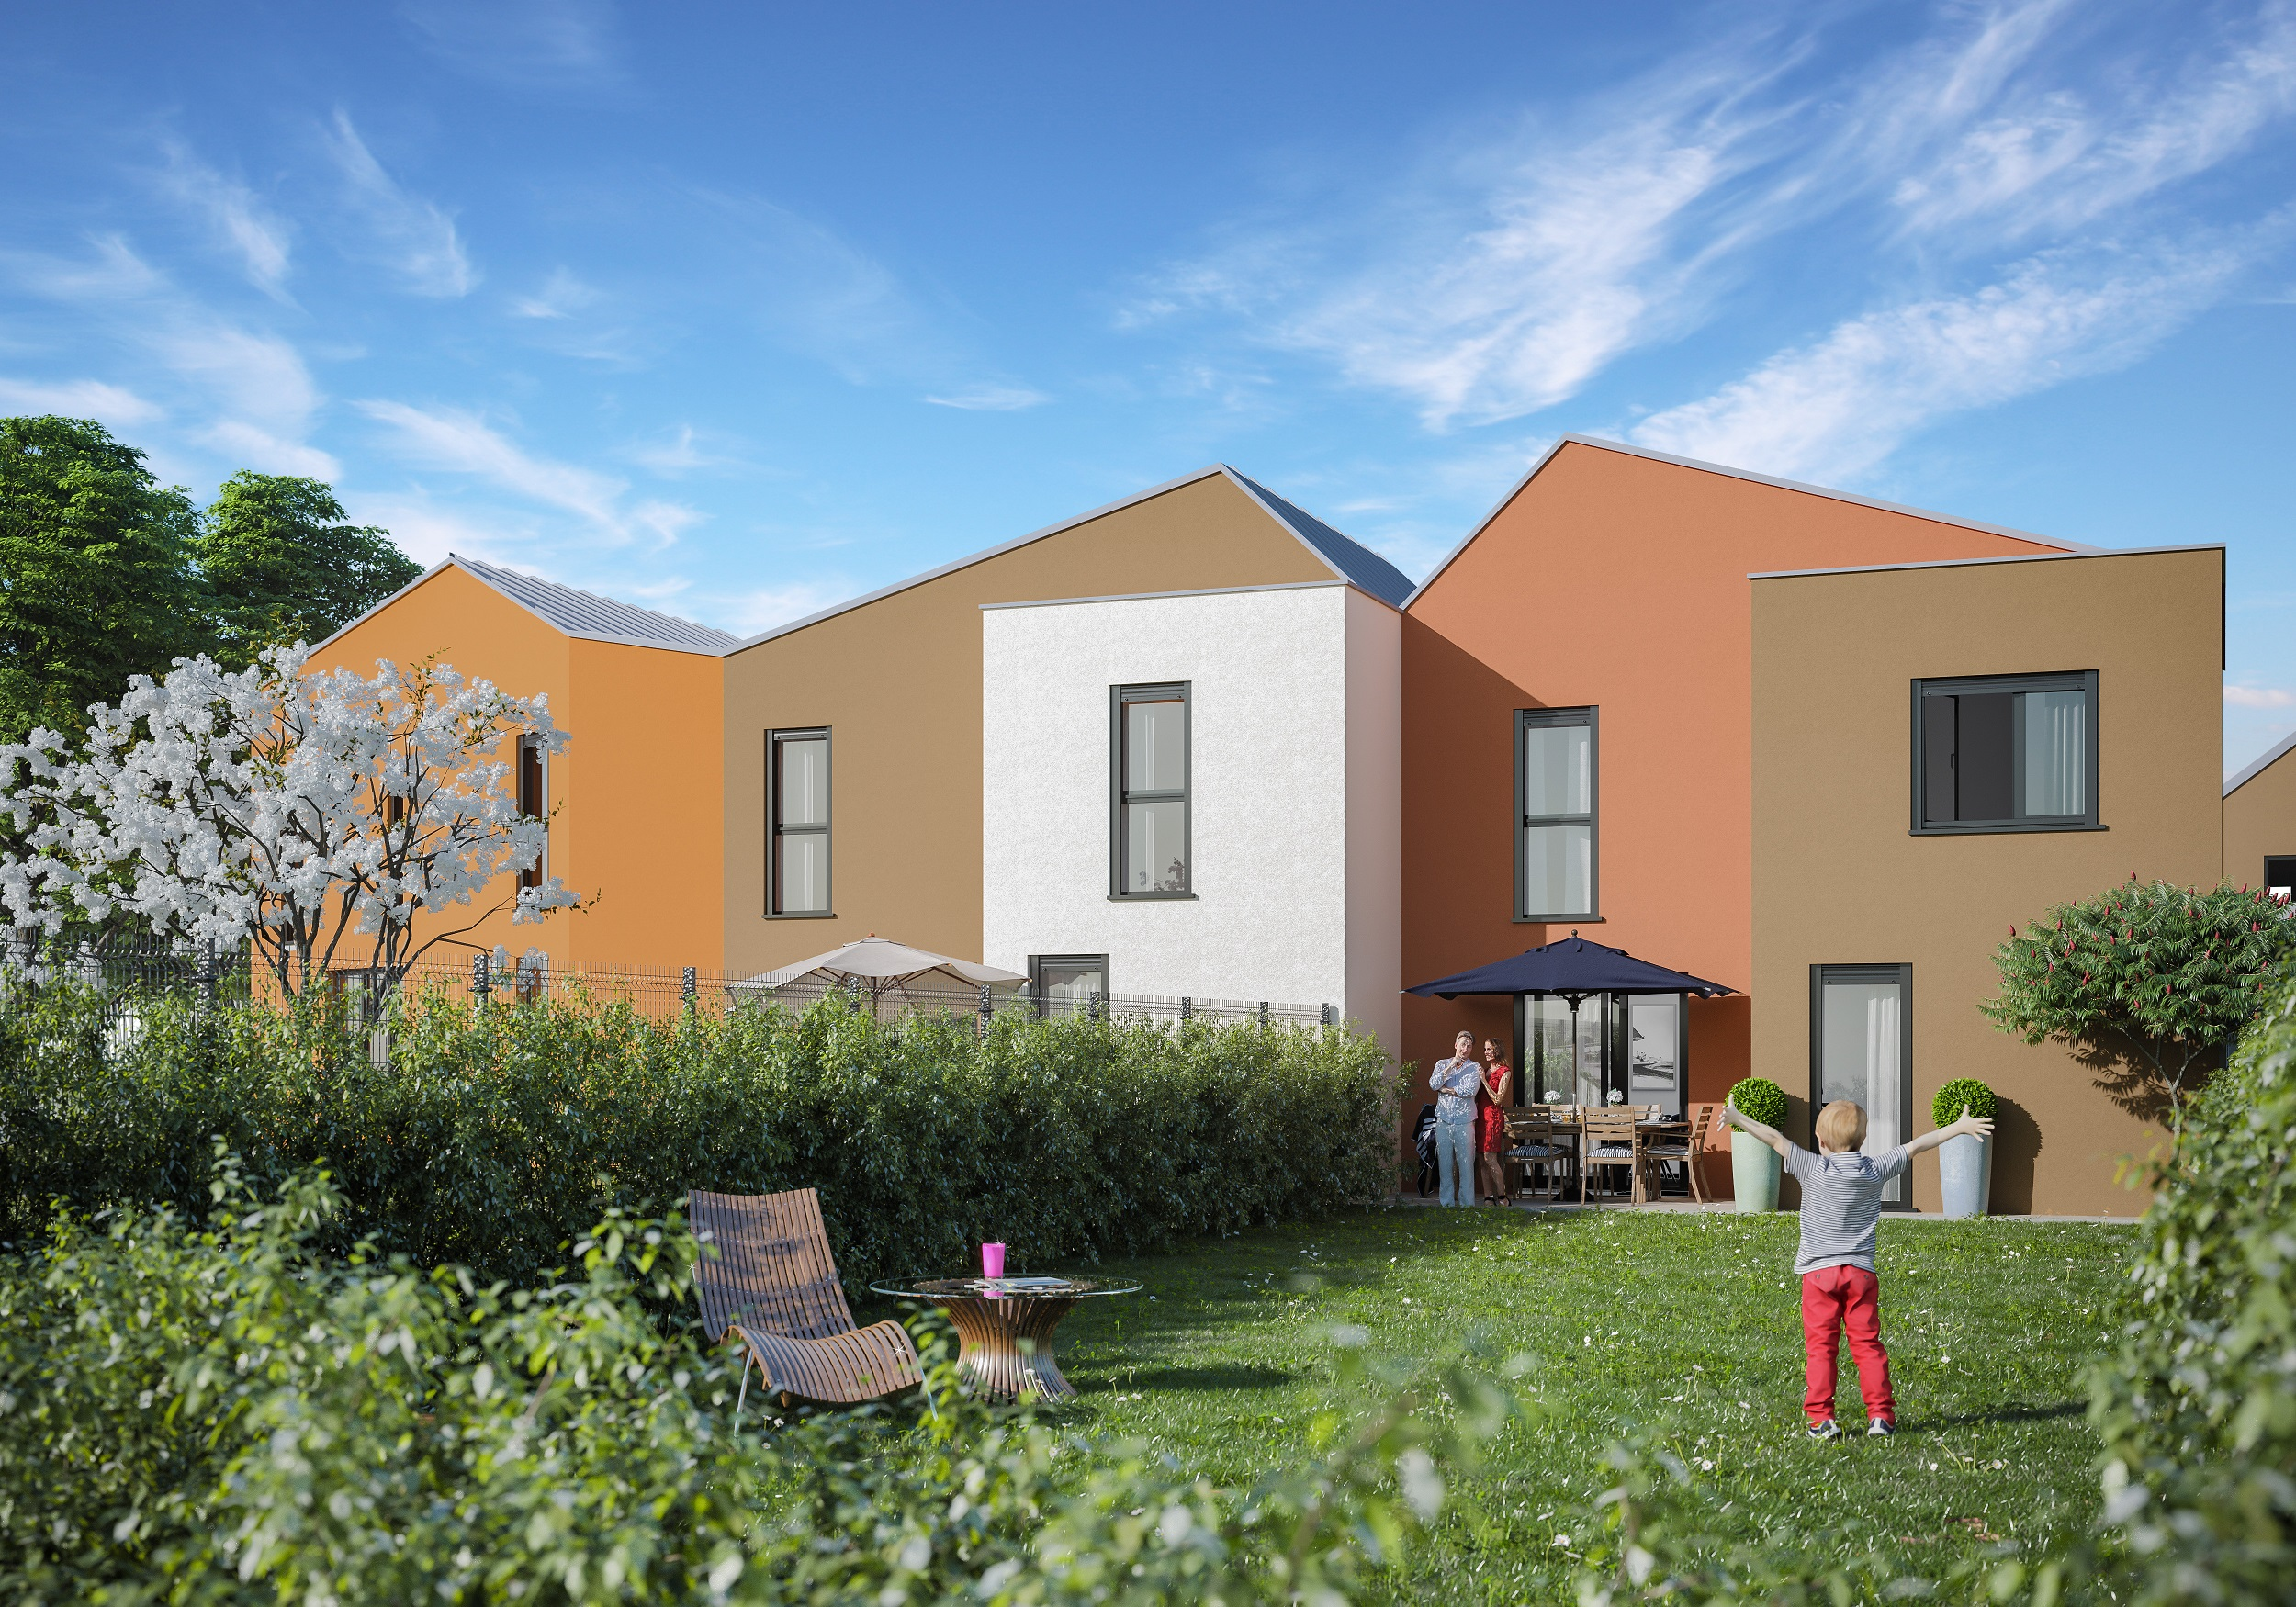 Les colorines reims programme immobilier neuf 51100 for Immo immobilier